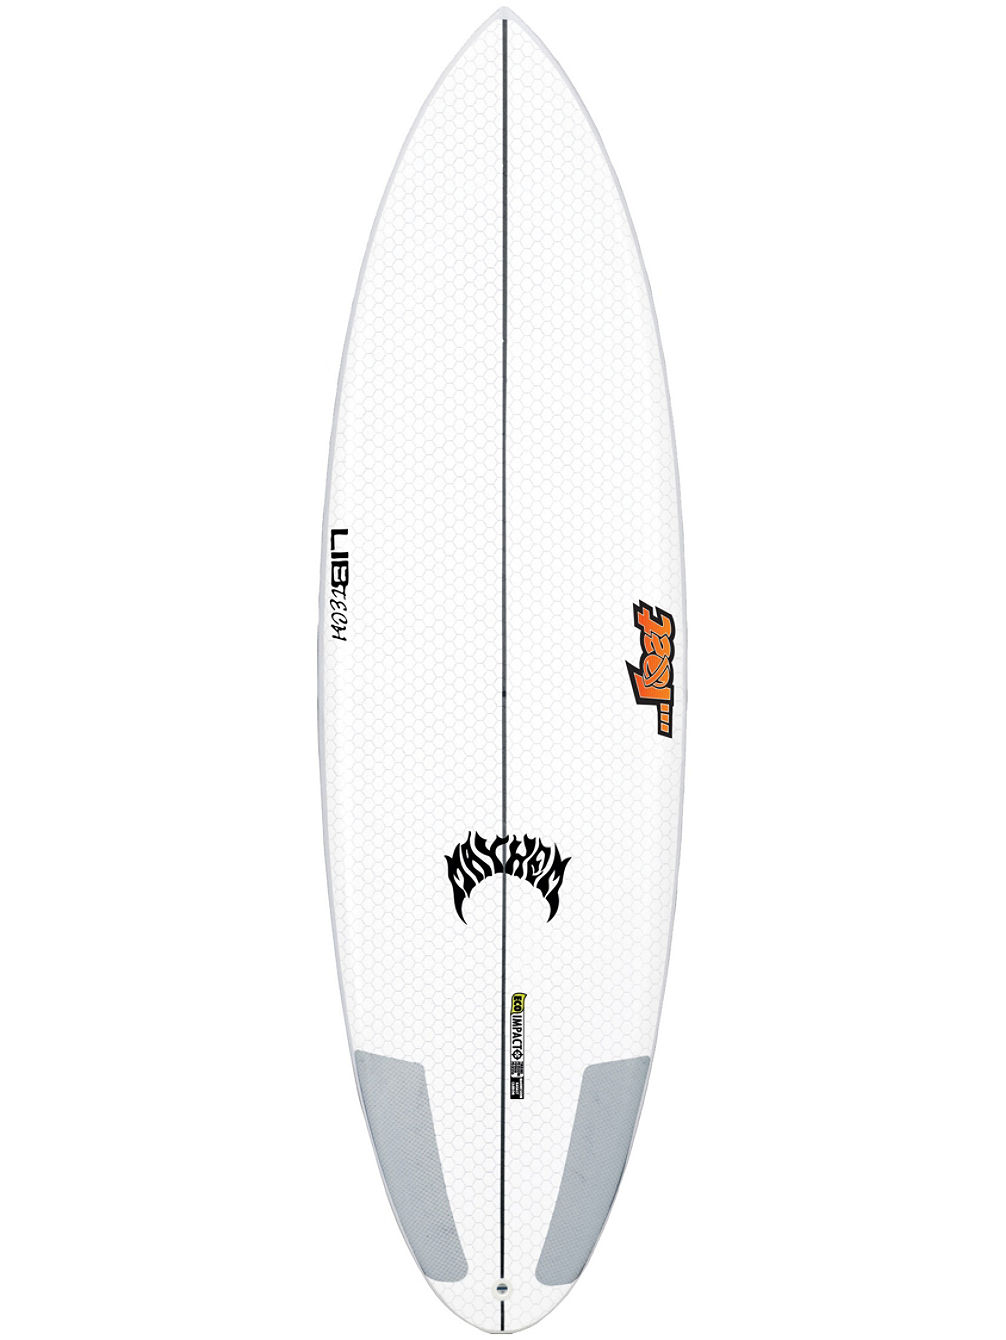 X Lost Quiver Killer 5'8 Surfboard